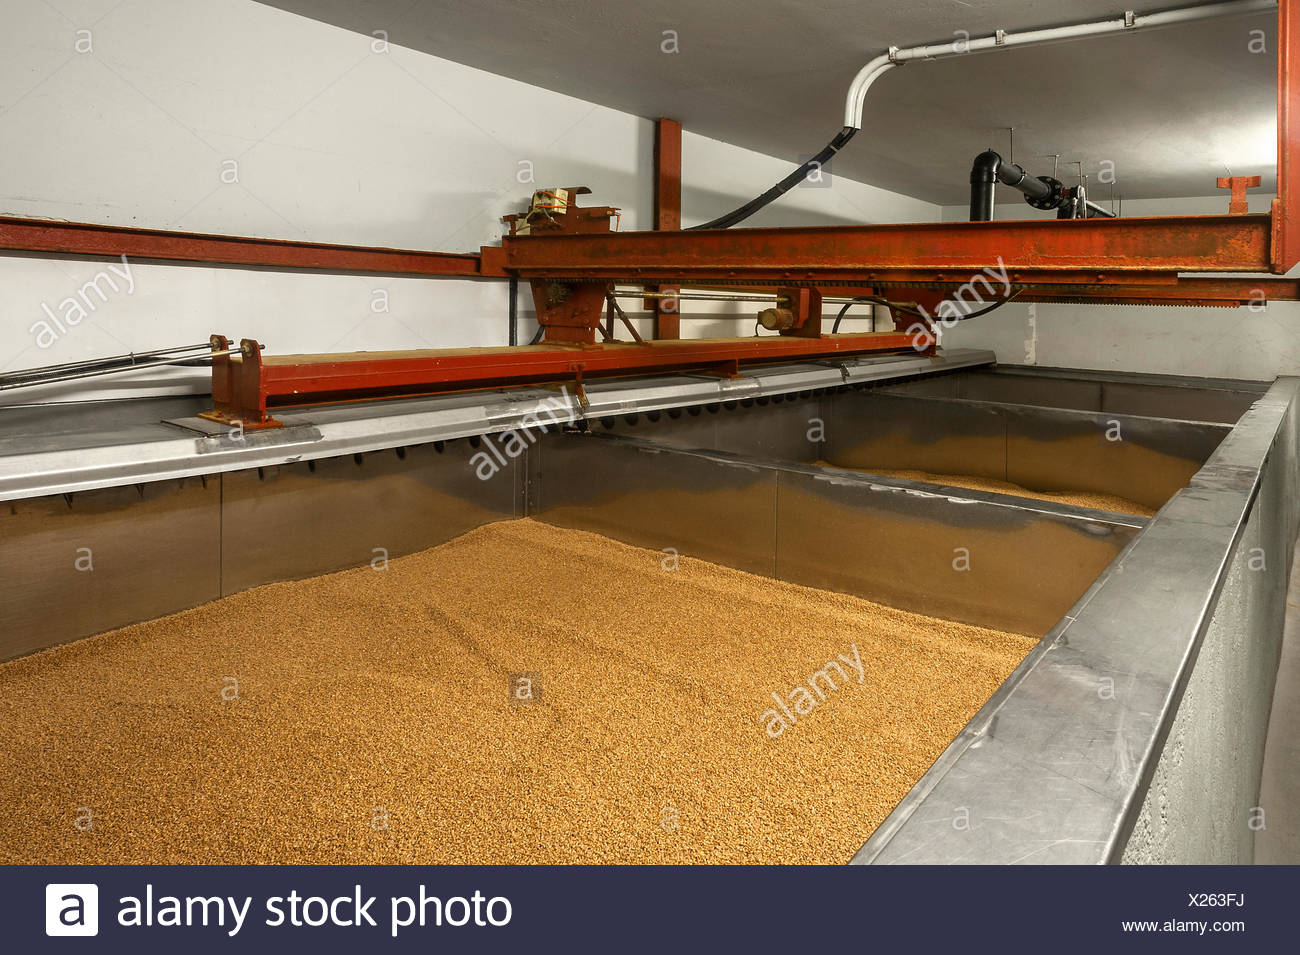 Small soak basin for the malting barley in a malthouse, Bavaria, Germany - Stock Image